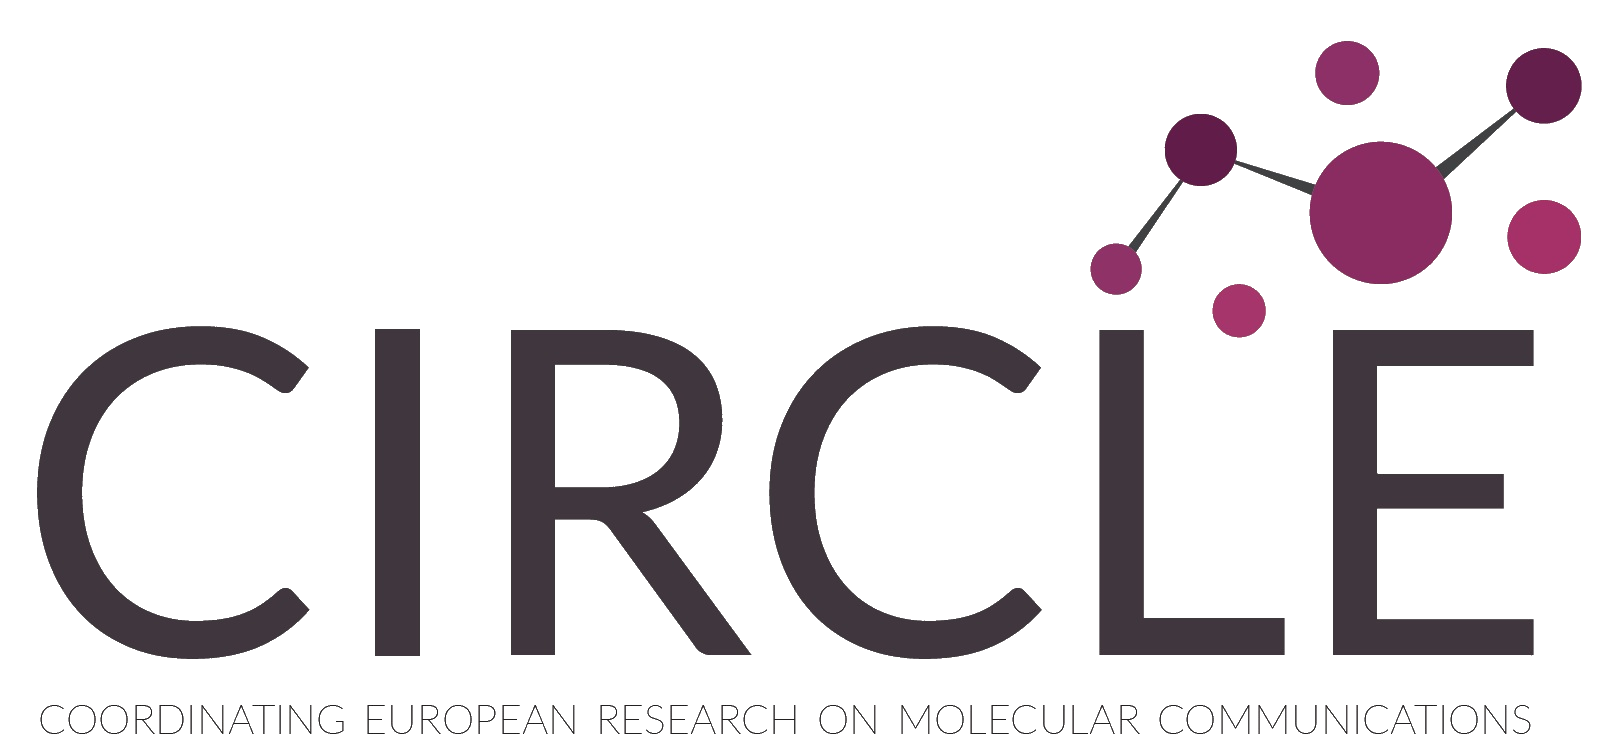 Coordinating European Research on Molecular Communications